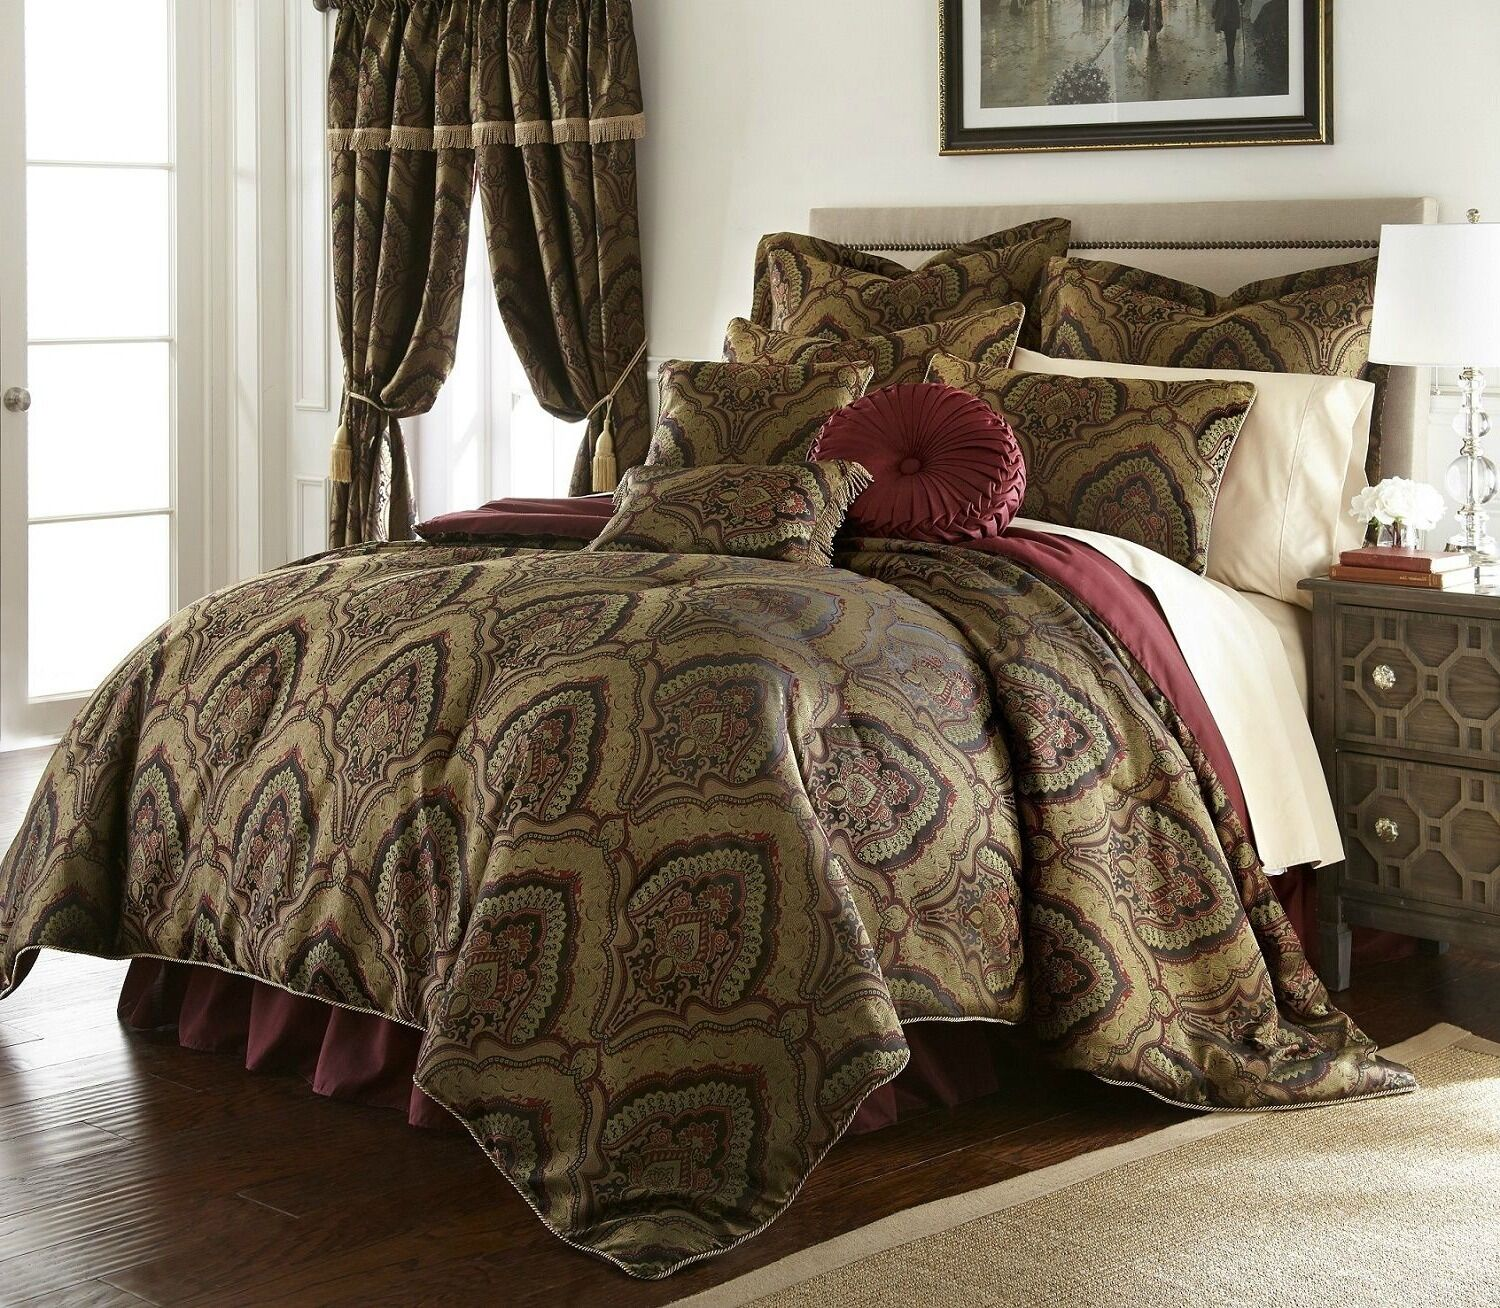 Luxurious Gold Jacquard Paisley Comforter Cal King Queen 9 pcs set or Curtains